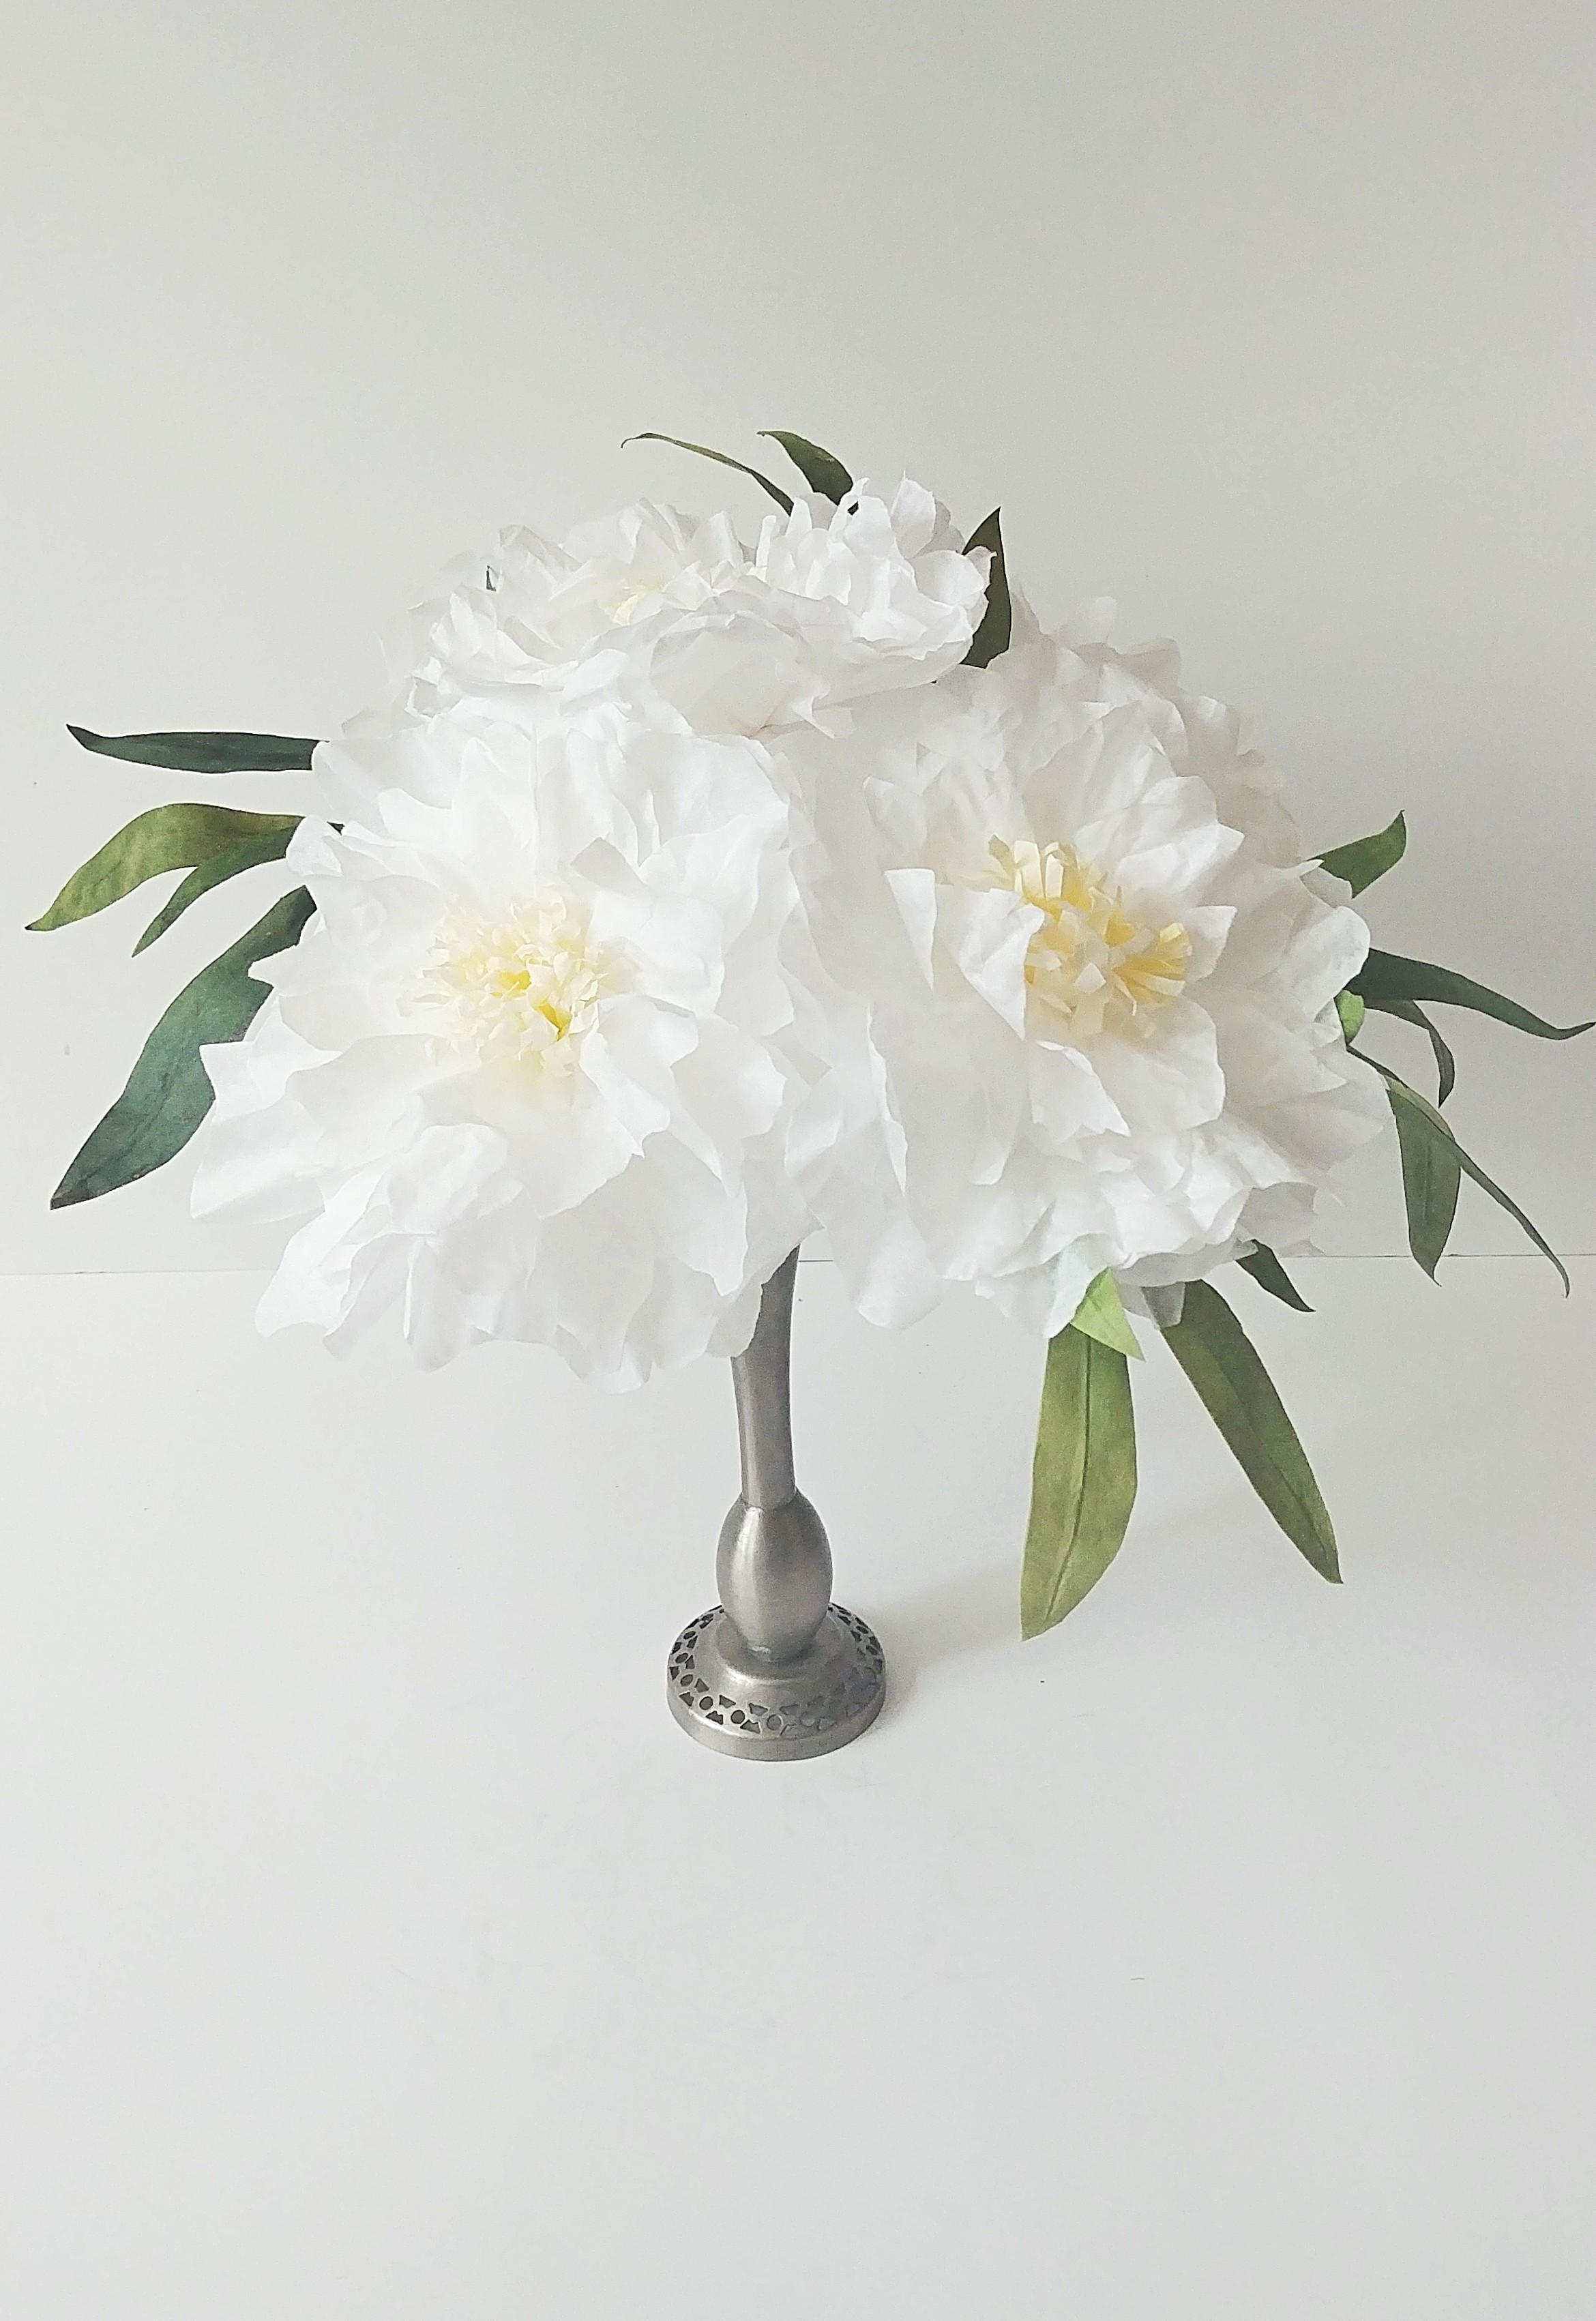 Tree Peonies & Olive Greens